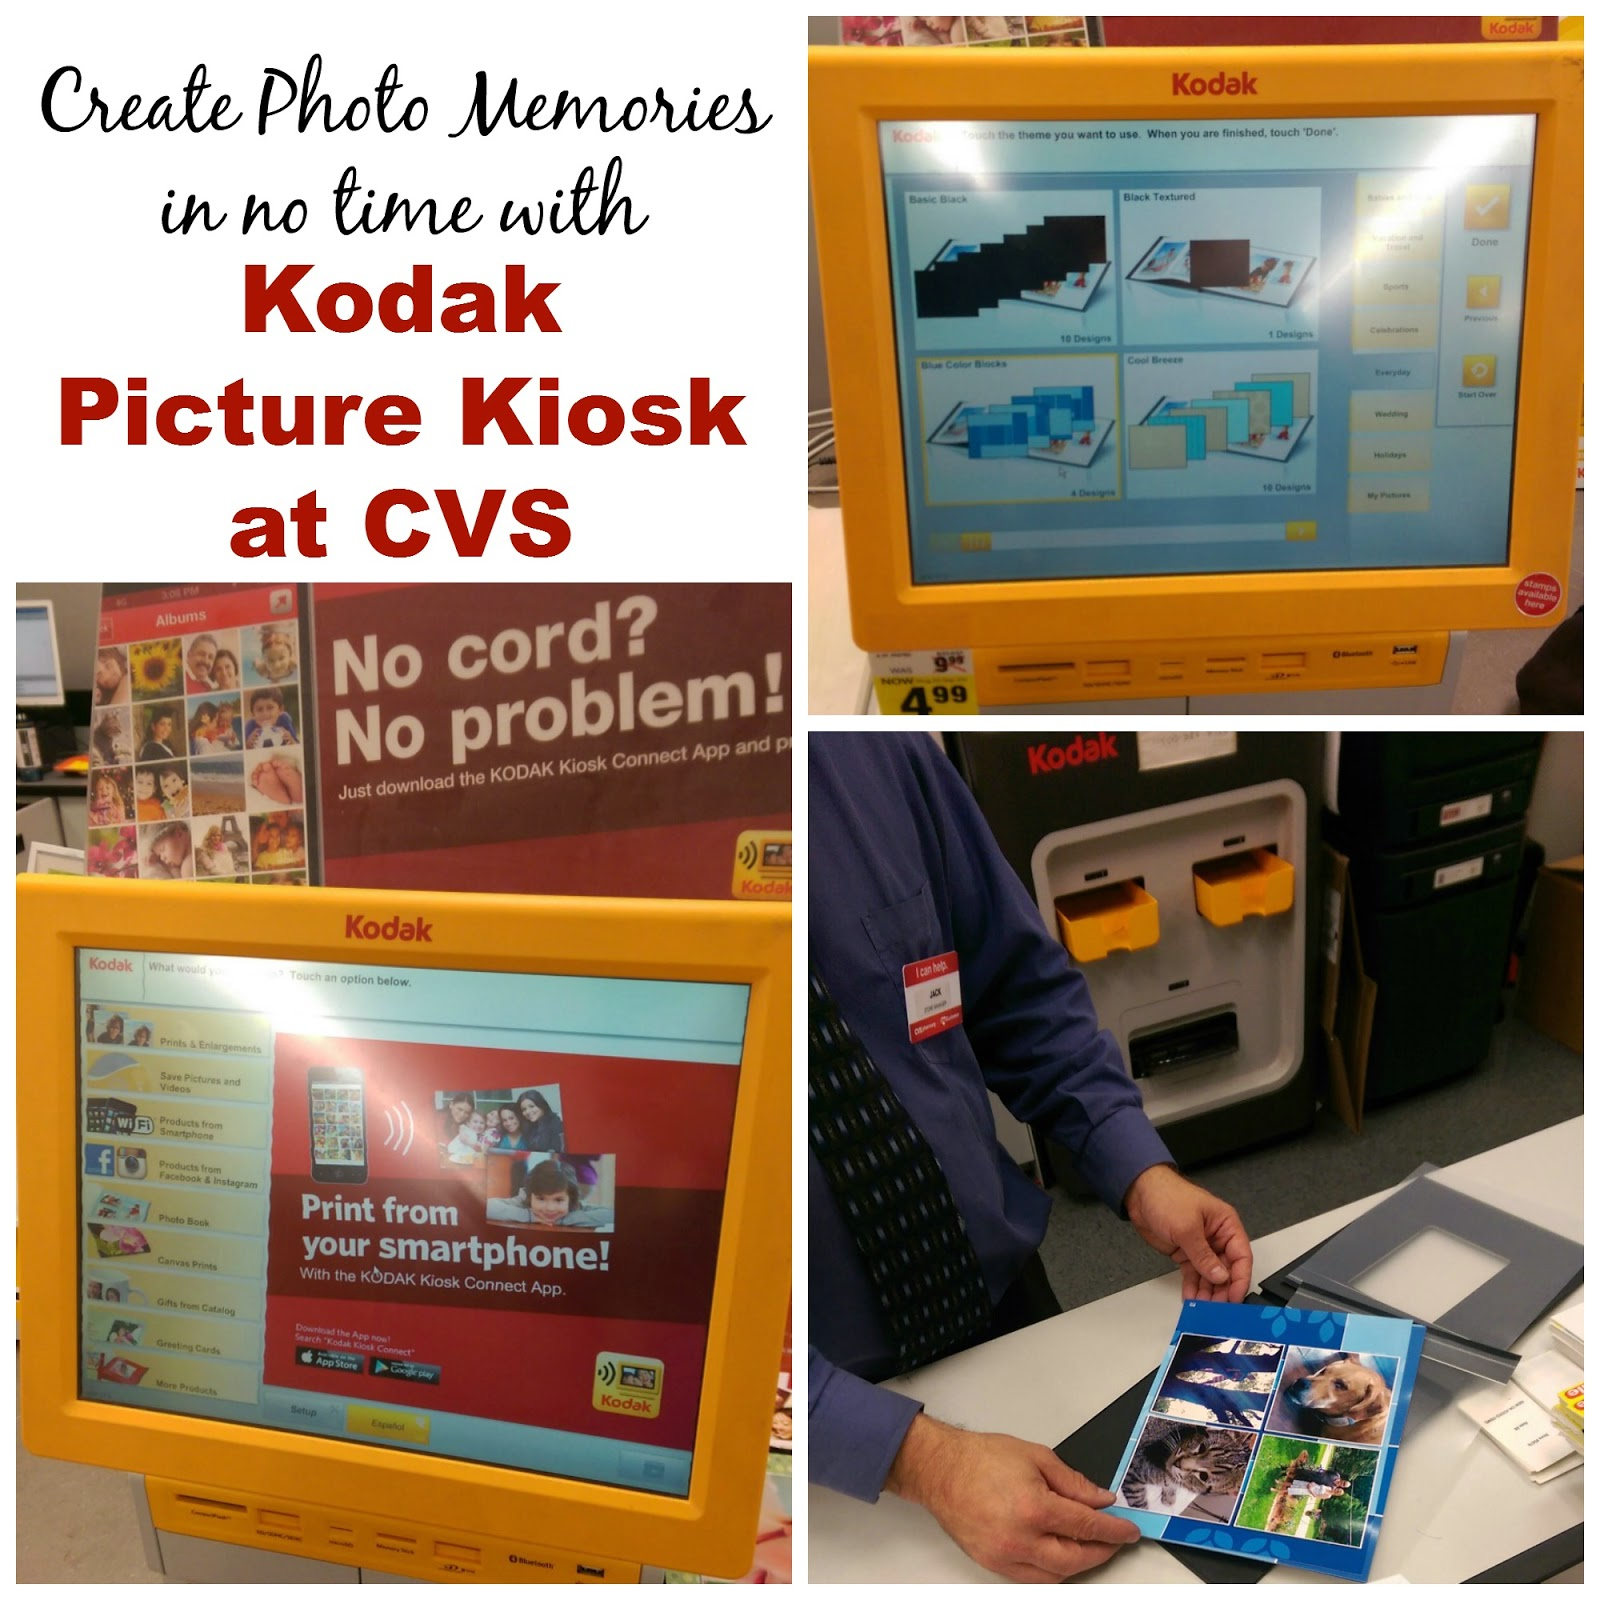 preserve photo memories with the kodak picture kiosk at cvs